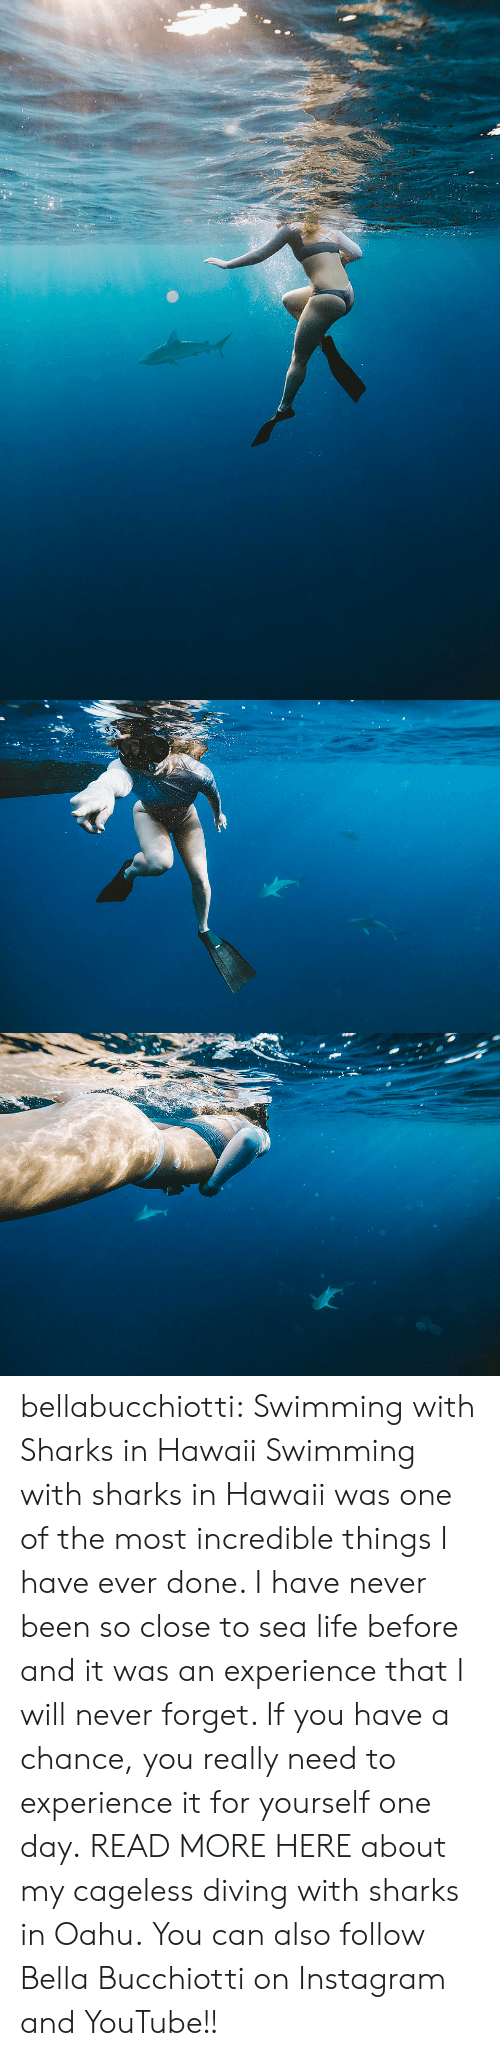 Instagram, Life, and Tumblr: bellabucchiotti: Swimming with Sharks in Hawaii   Swimming with sharks in Hawaii was one of the most incredible things I  have ever done. I have never been so close to sea life before and it was  an experience that I will never forget. If you have a chance, you  really need to experience it for yourself one day.  READ MORE HERE about my cageless diving with sharks in Oahu.  You can also follow Bella Bucchiotti on Instagram and YouTube!!